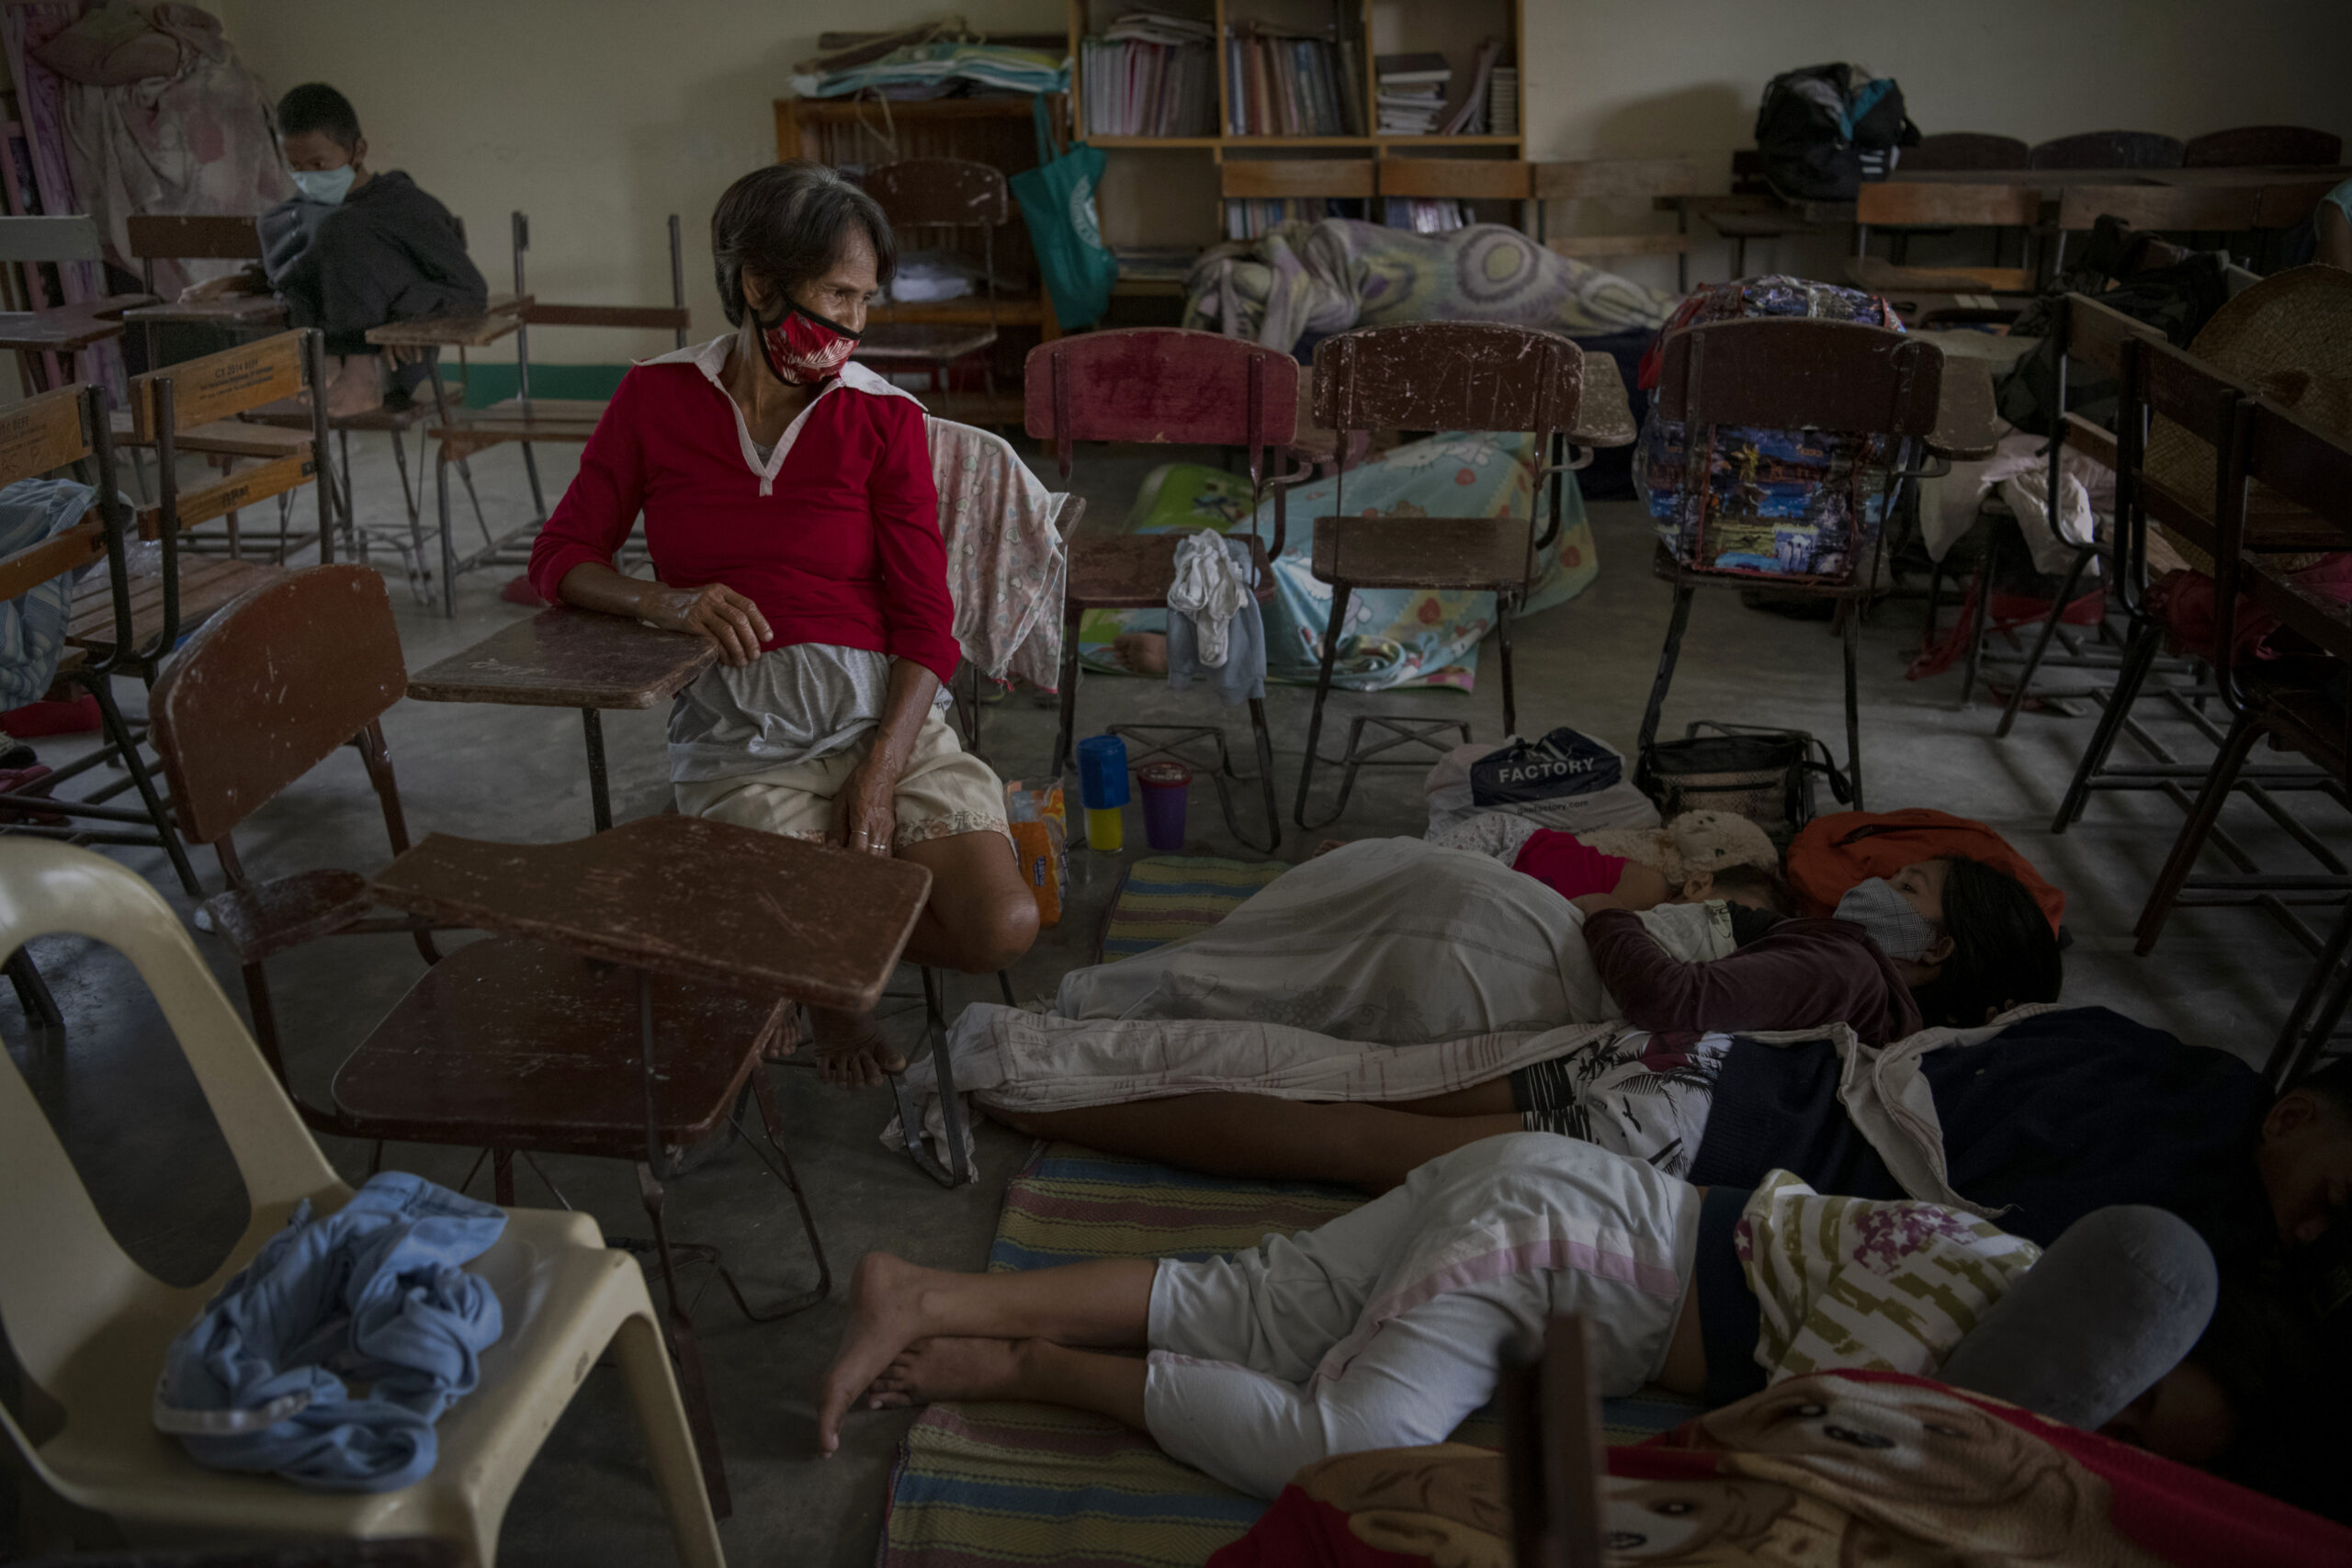 Residents take shelter inside a public school classroom in Tagkawayan, Philippines as typhoon Goni enters the country on Nov. 1, 2020. Super Typhoon Goni made landfall in the Philippines with wind gusts of up to 190 miles per hour. Credit: Jes Aznar/Getty Images